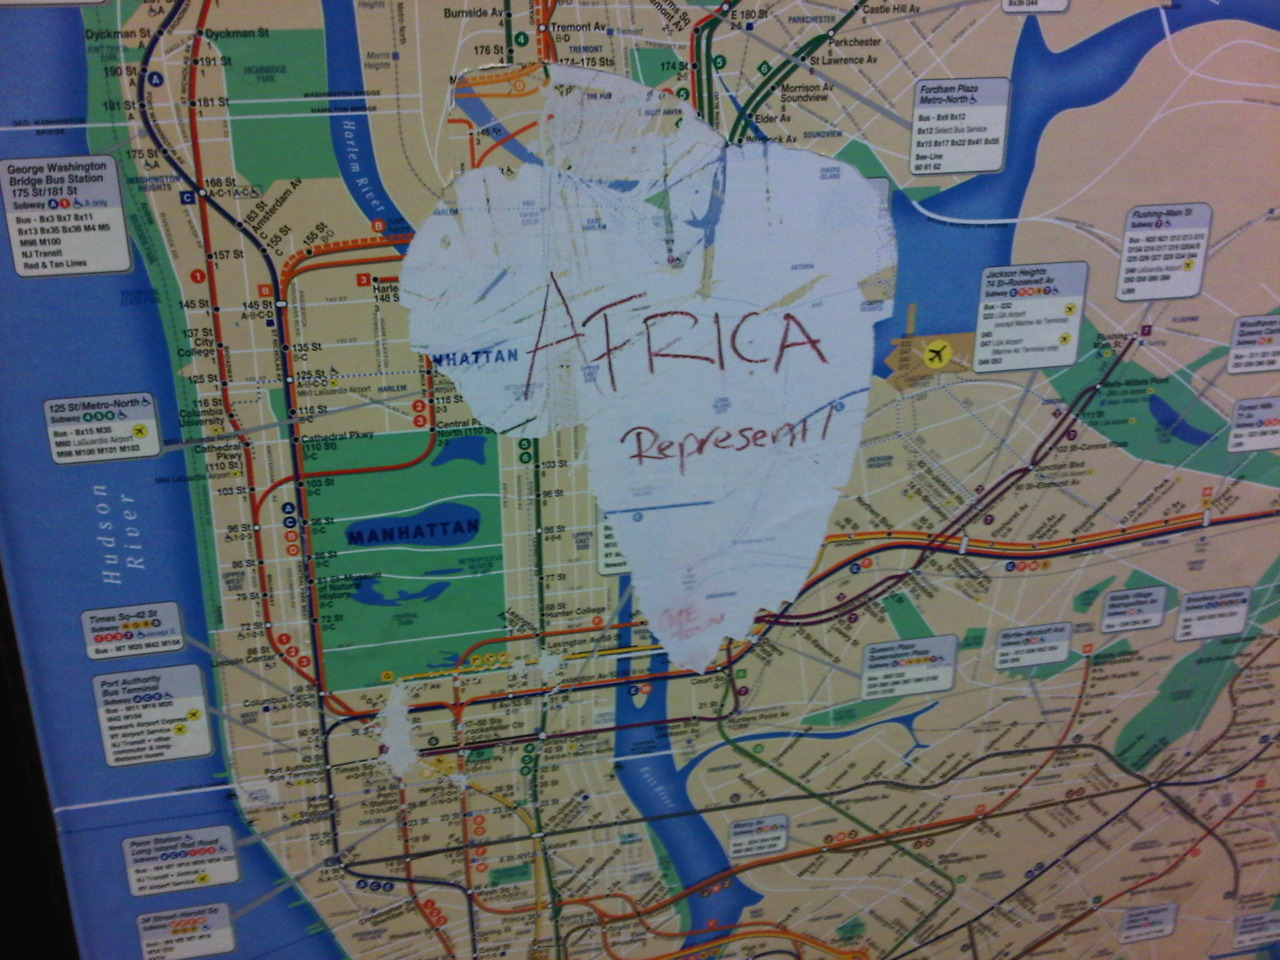 Africa's in the house. 49th street.